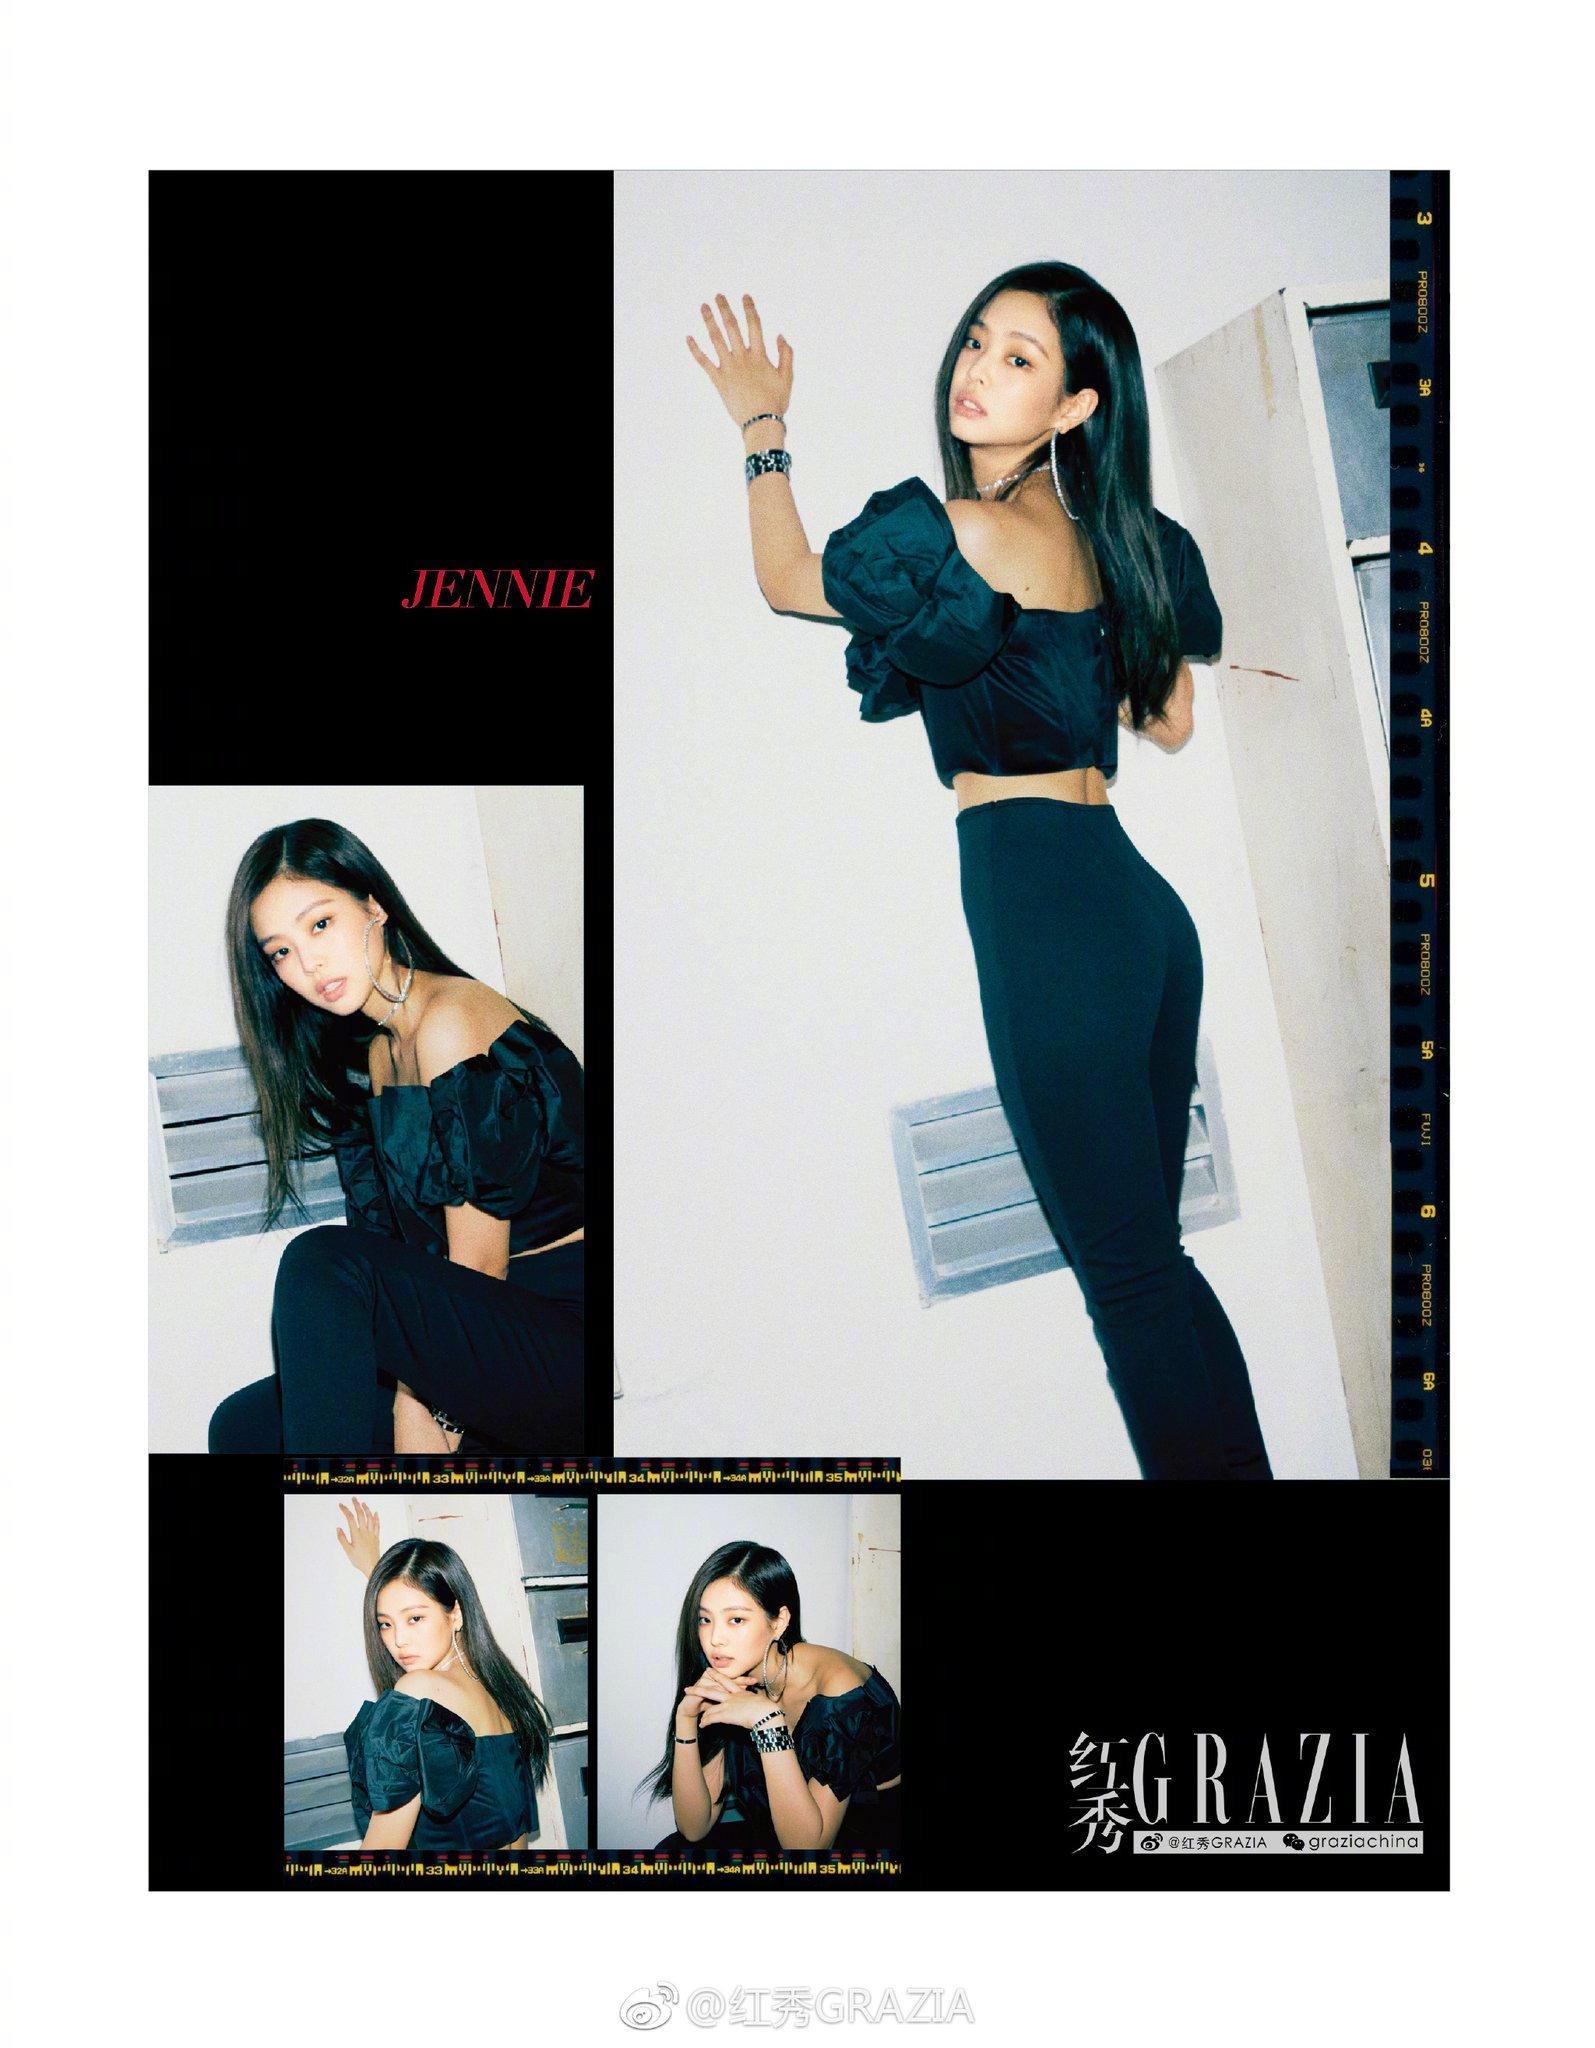 BLACKPINK for GRAZIA China Magazine  https://t.co/g9JFnsdhQb  #BLACKPINK #블랙핑크 https://t.co/MmNzNlQIs0